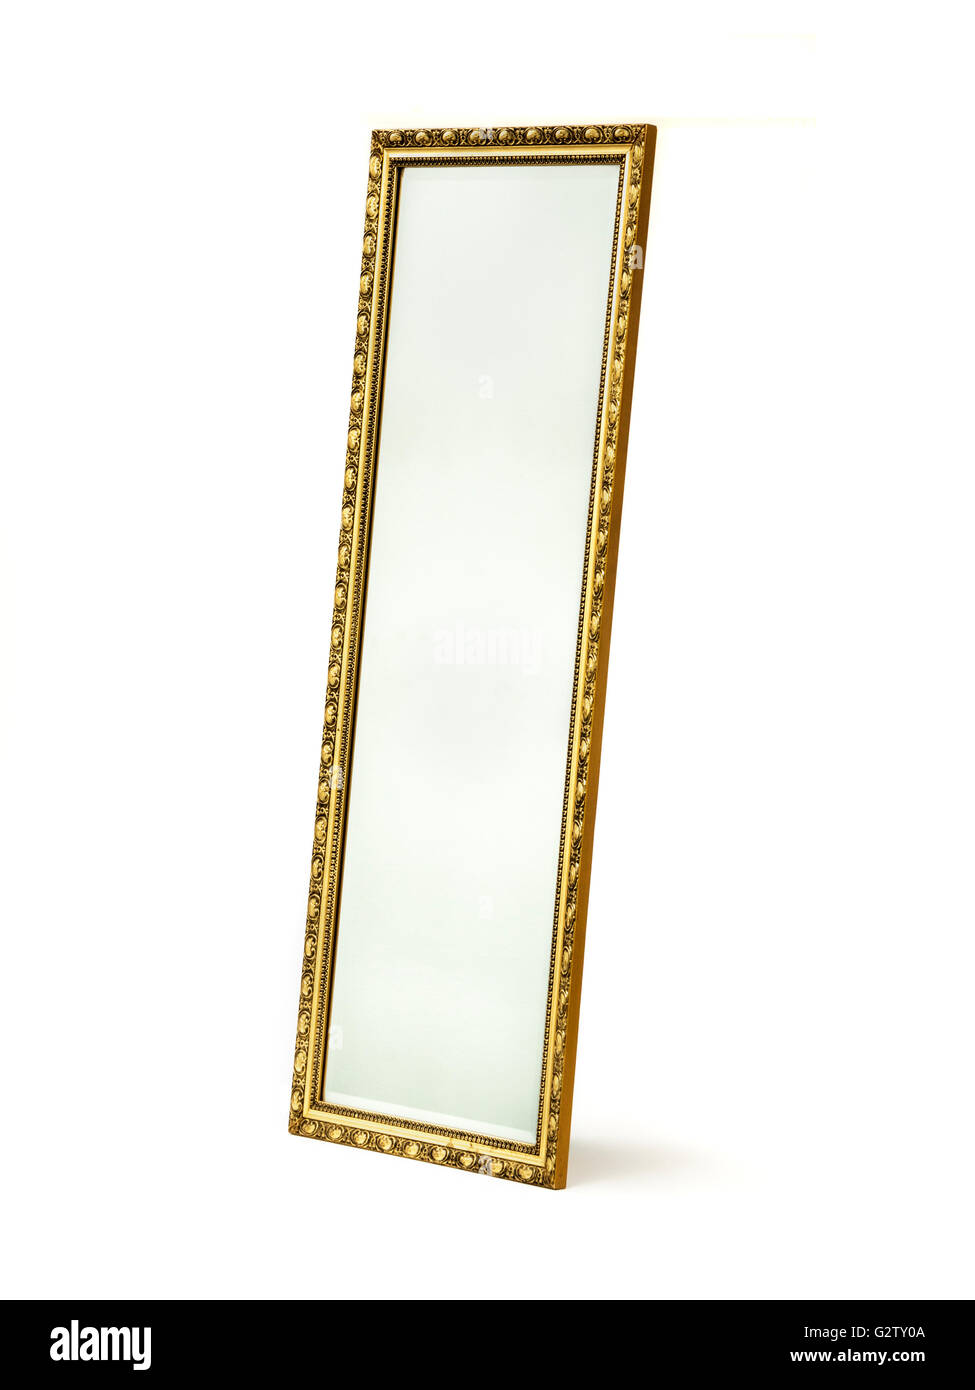 Bevelled glass mirror in gilded wooden frame - Stock Image